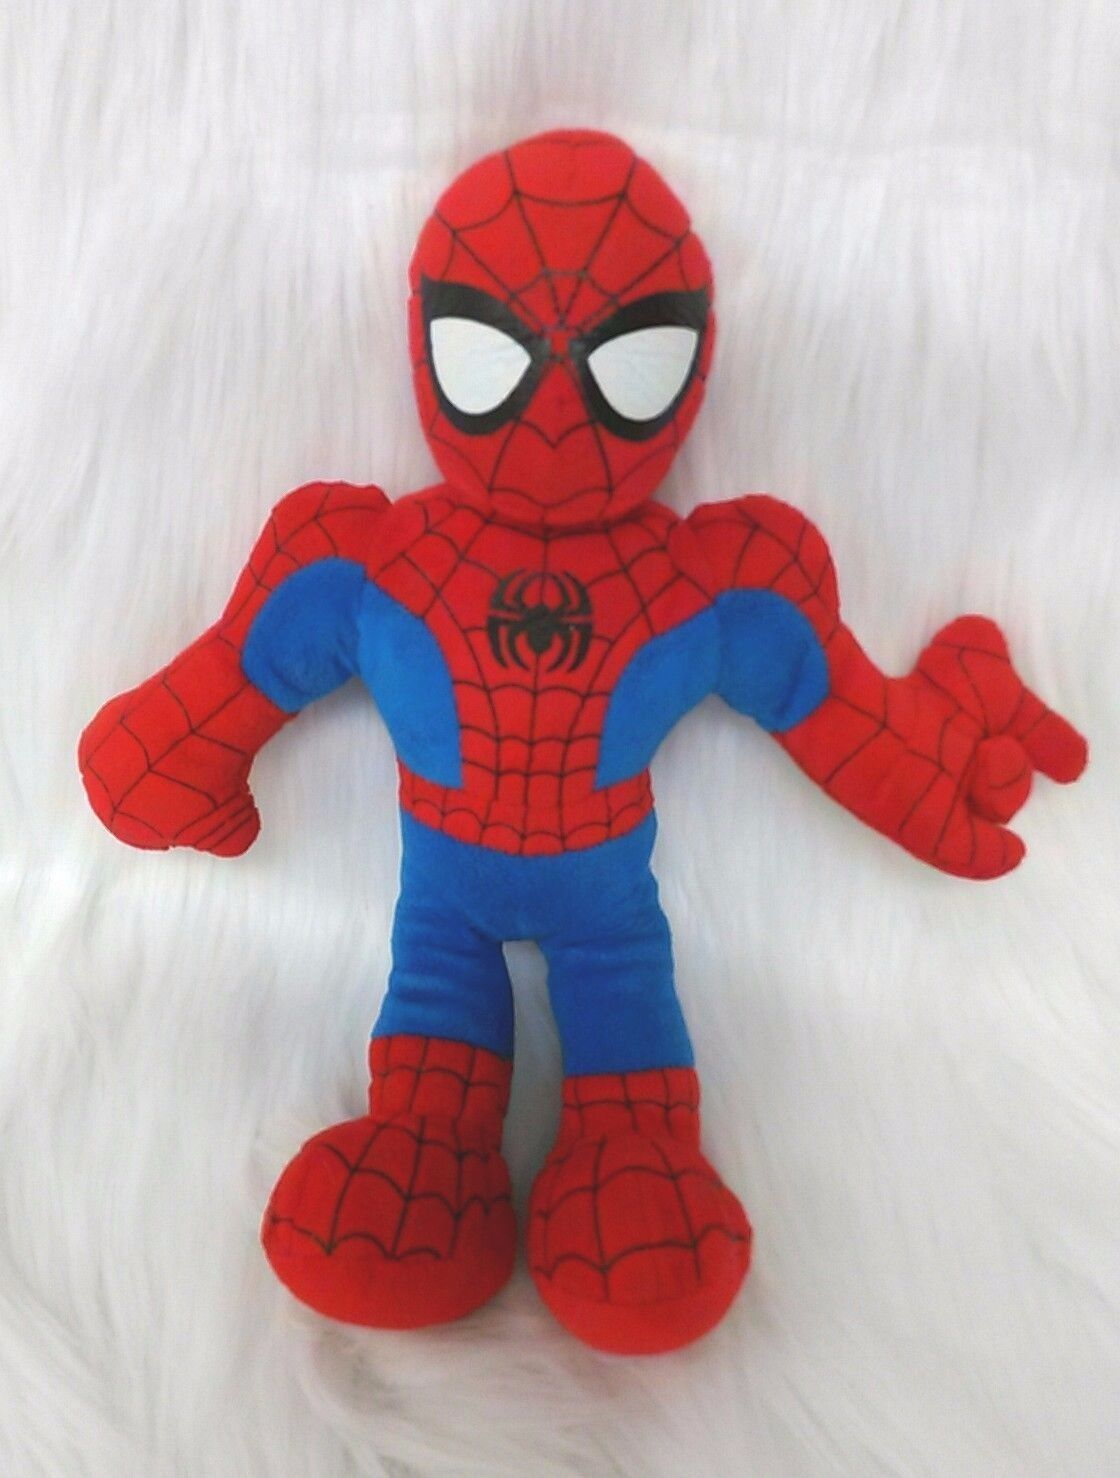 "8"" Spiderman Marvel Avengers Plush Doll Stuffed Toy Red Blue B290"